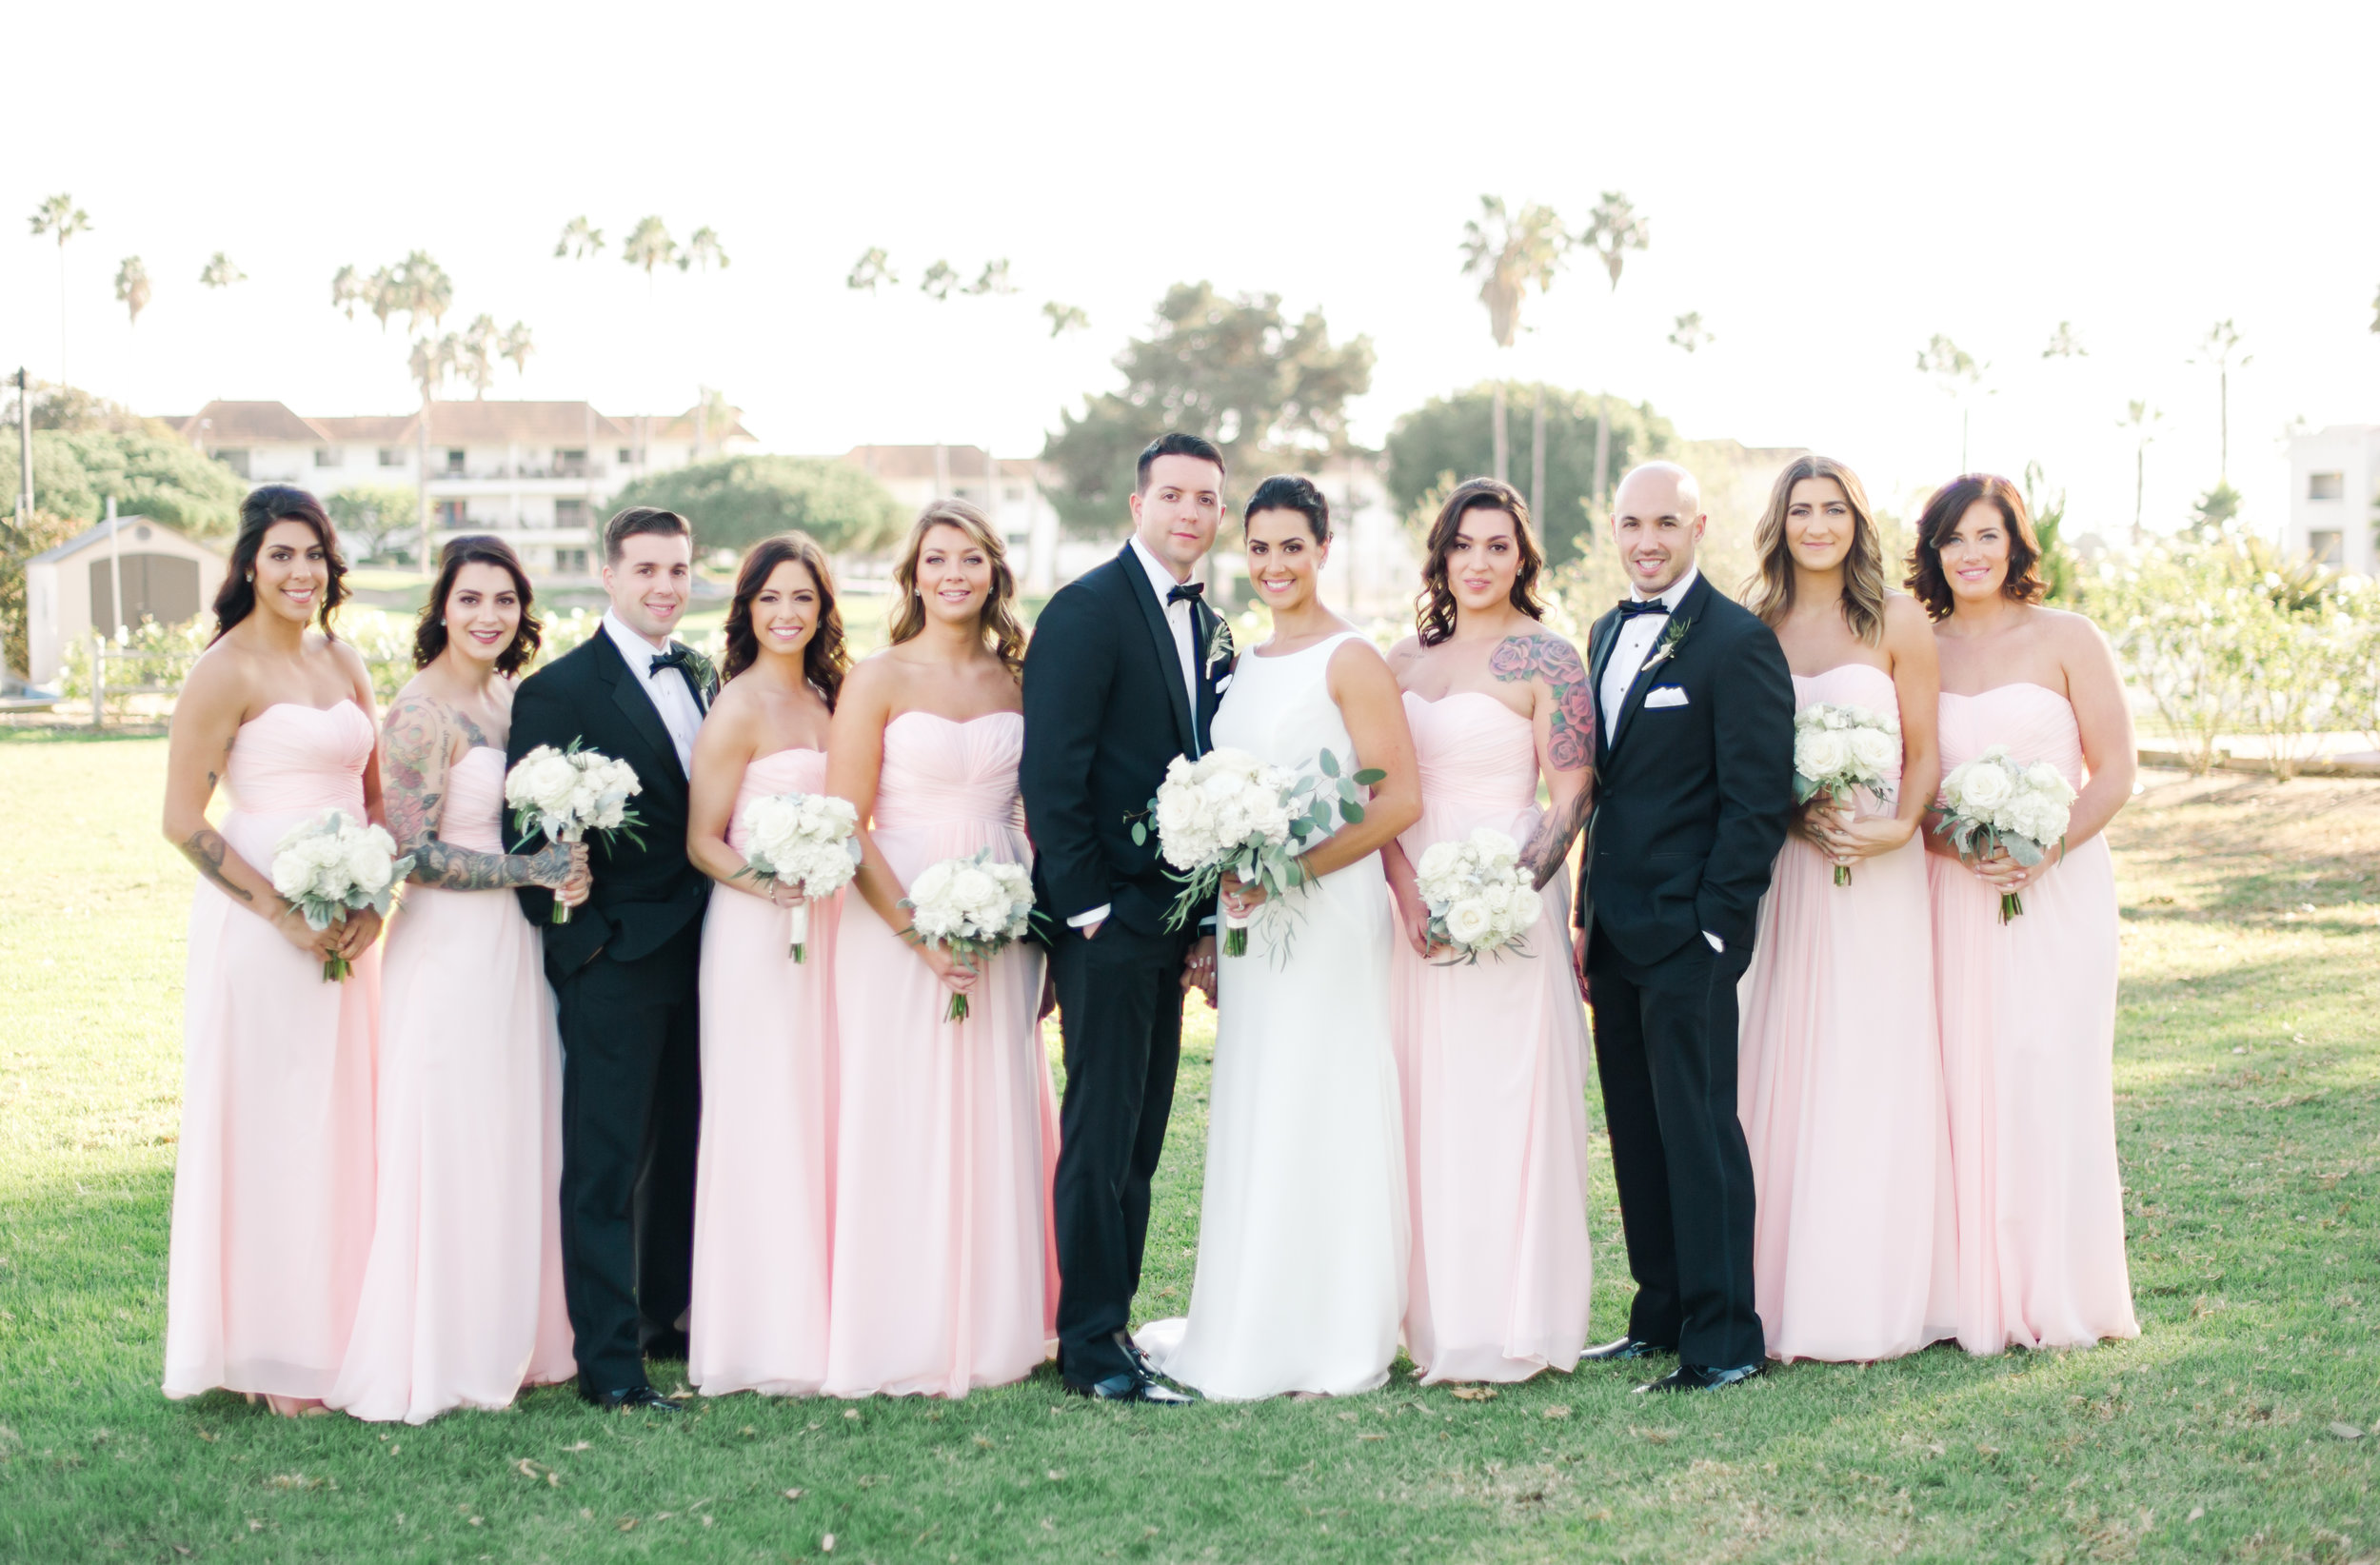 Bride, groom and bridal party portrait during outdoor wedding in San Clemente captured by Taryn Grey Photography. Bridal hair and makeup by Vanity Belle in Orange County (Costa Mesa) and San Diego (La Jolla) thevanitybelle.com